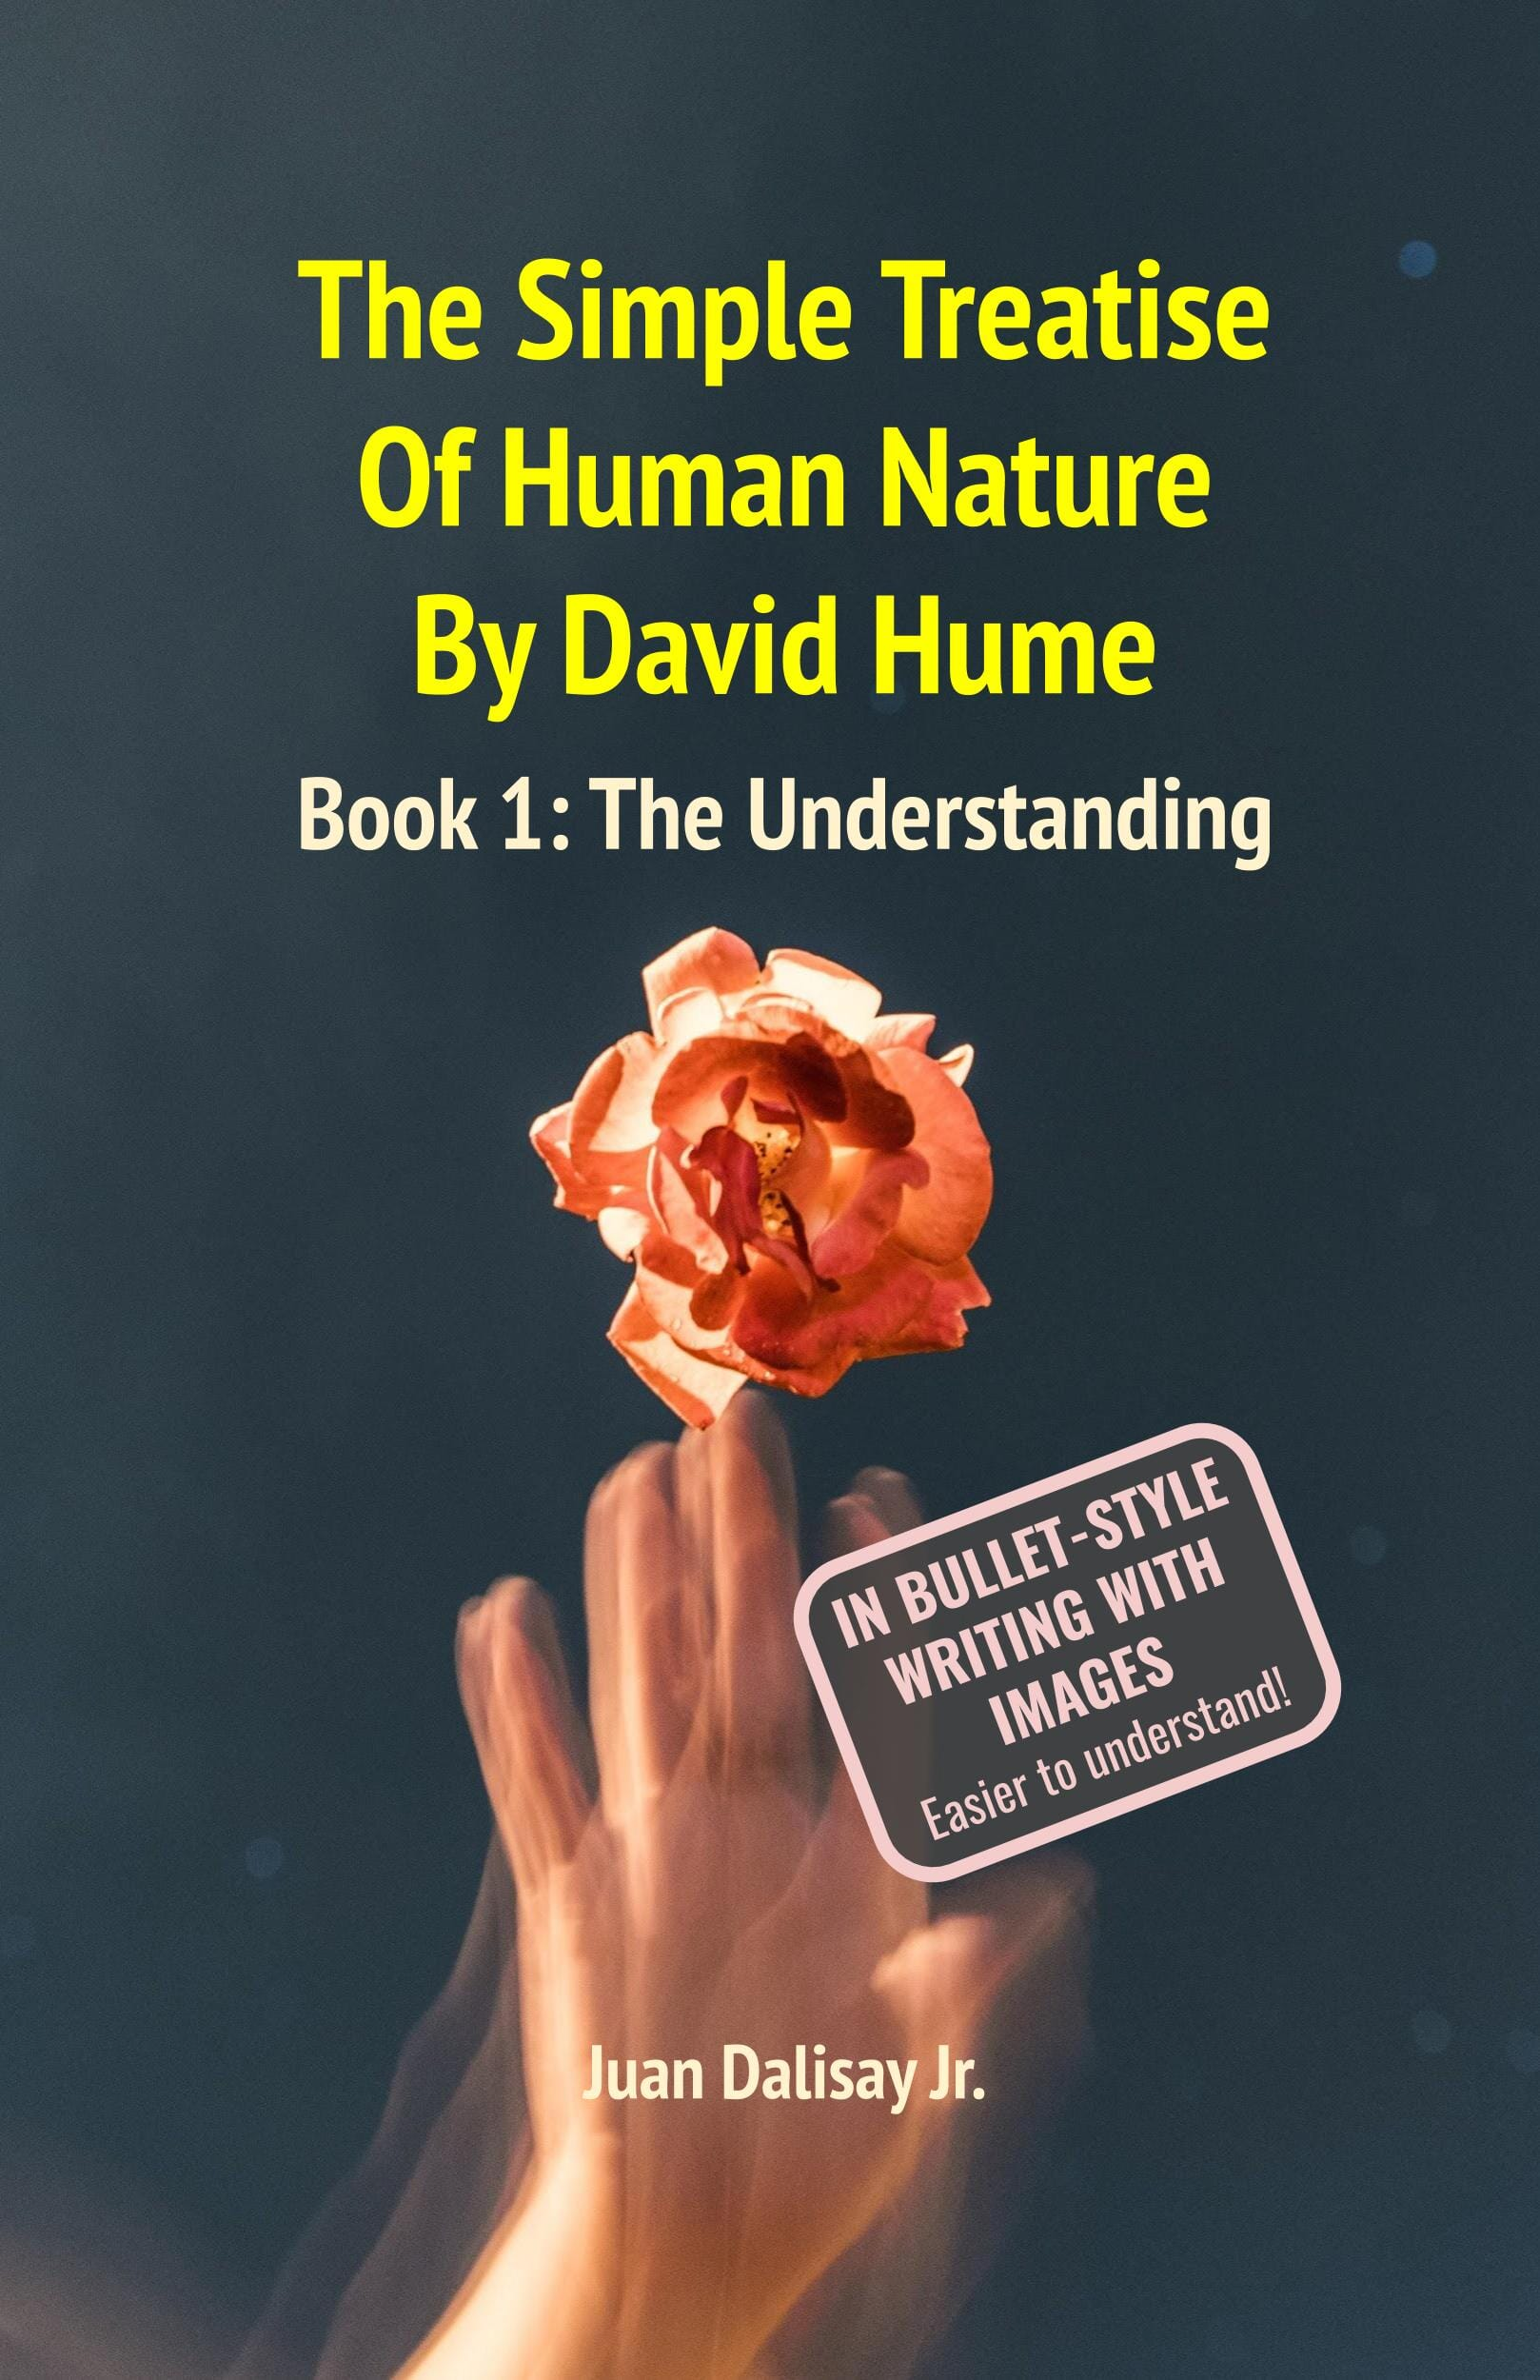 The Simple Treatise of Human Nature Book 1